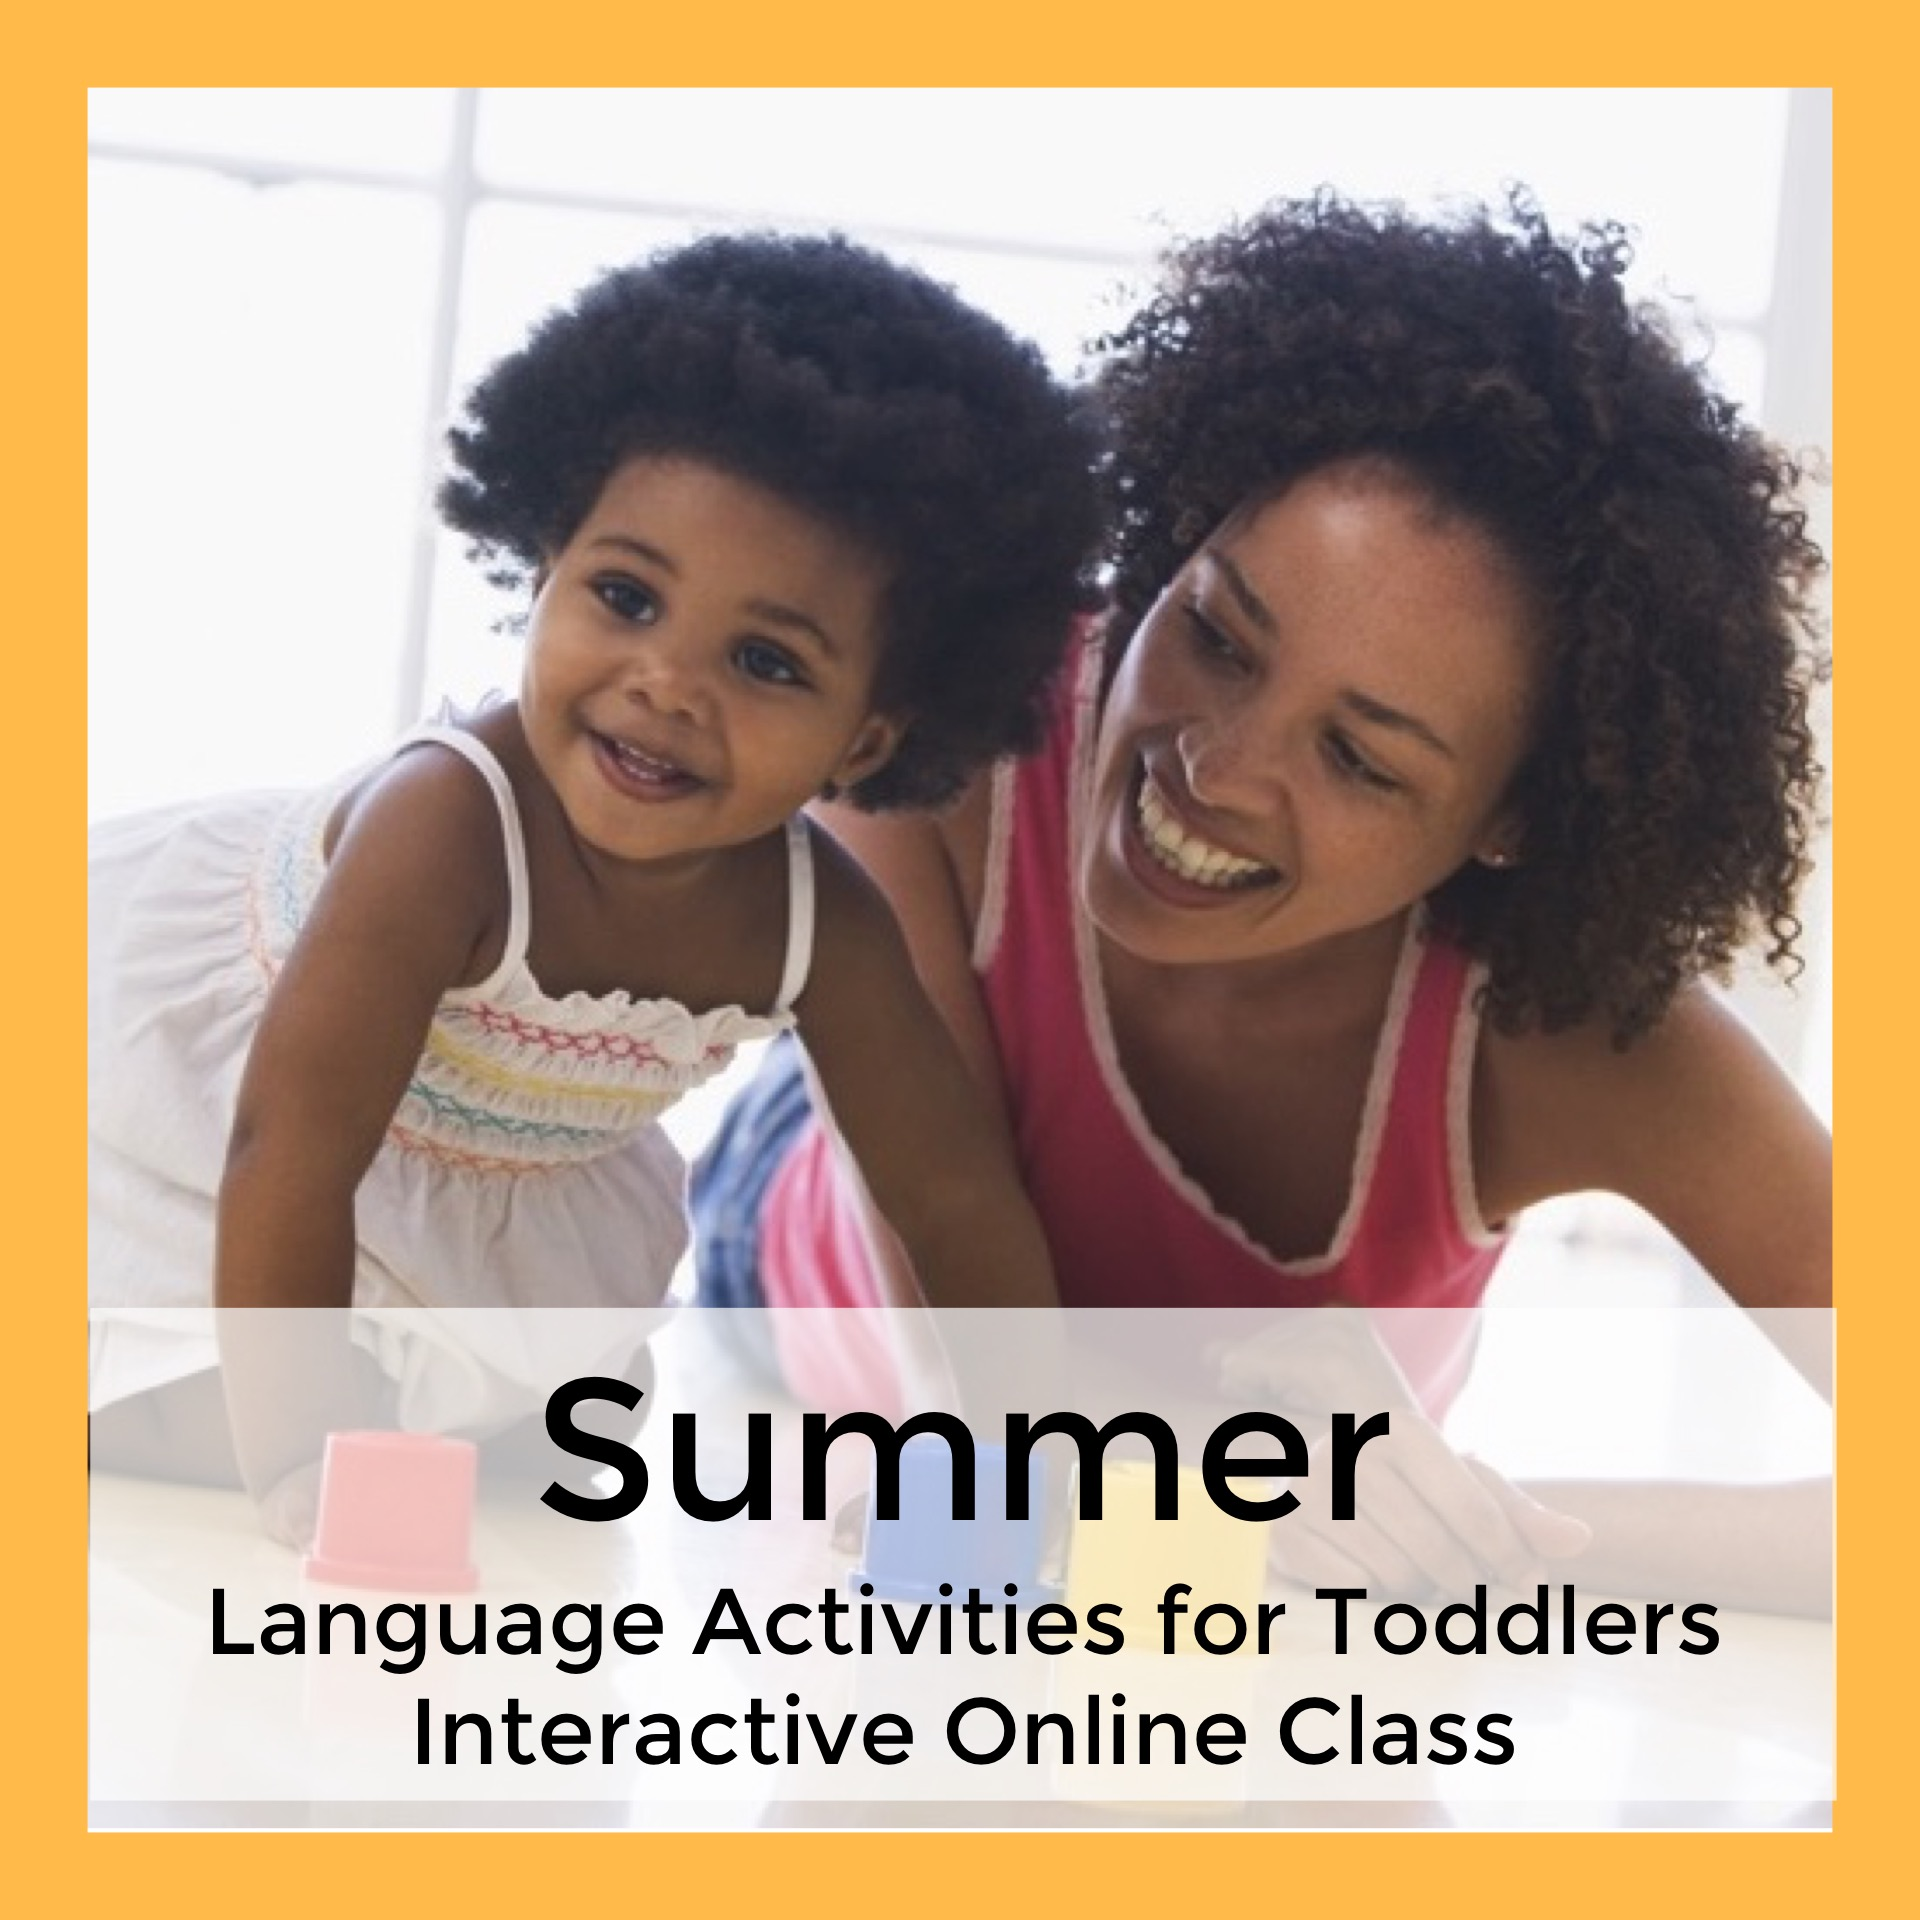 Summer Language Activities for Toddlers Interactive Online Class